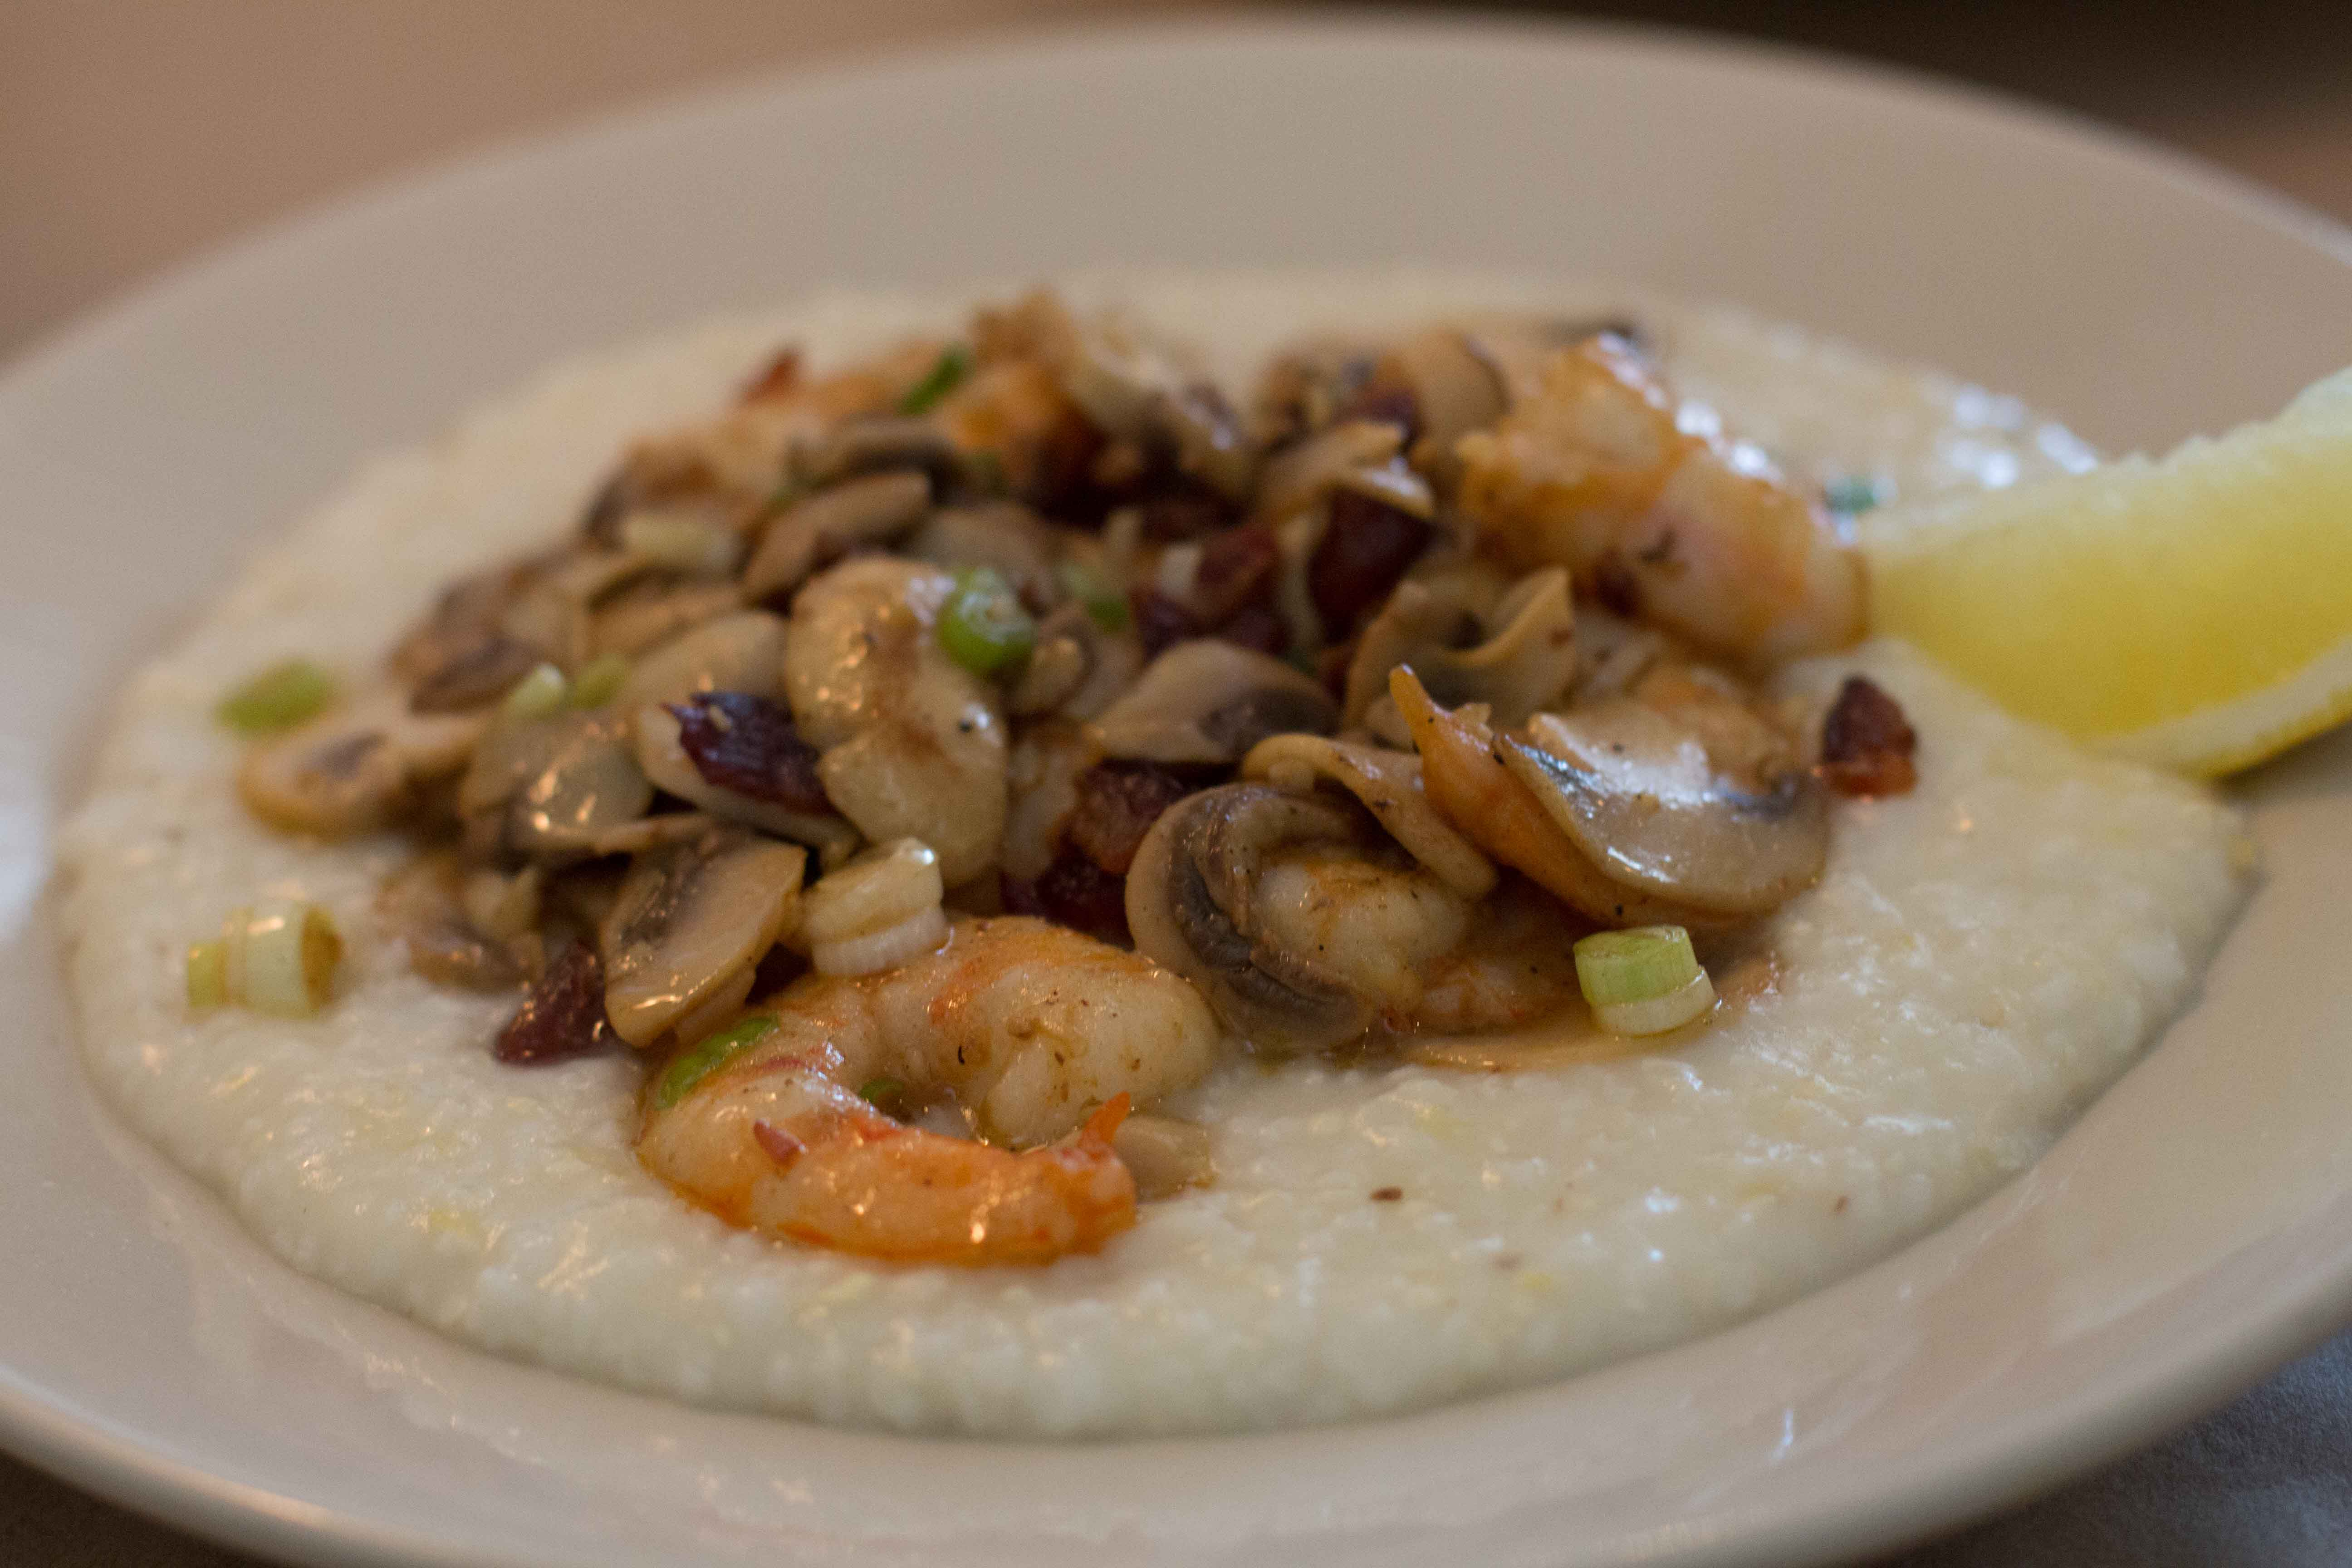 Shrimp and cheese grits with sautéed scallions, mushrooms and bacon